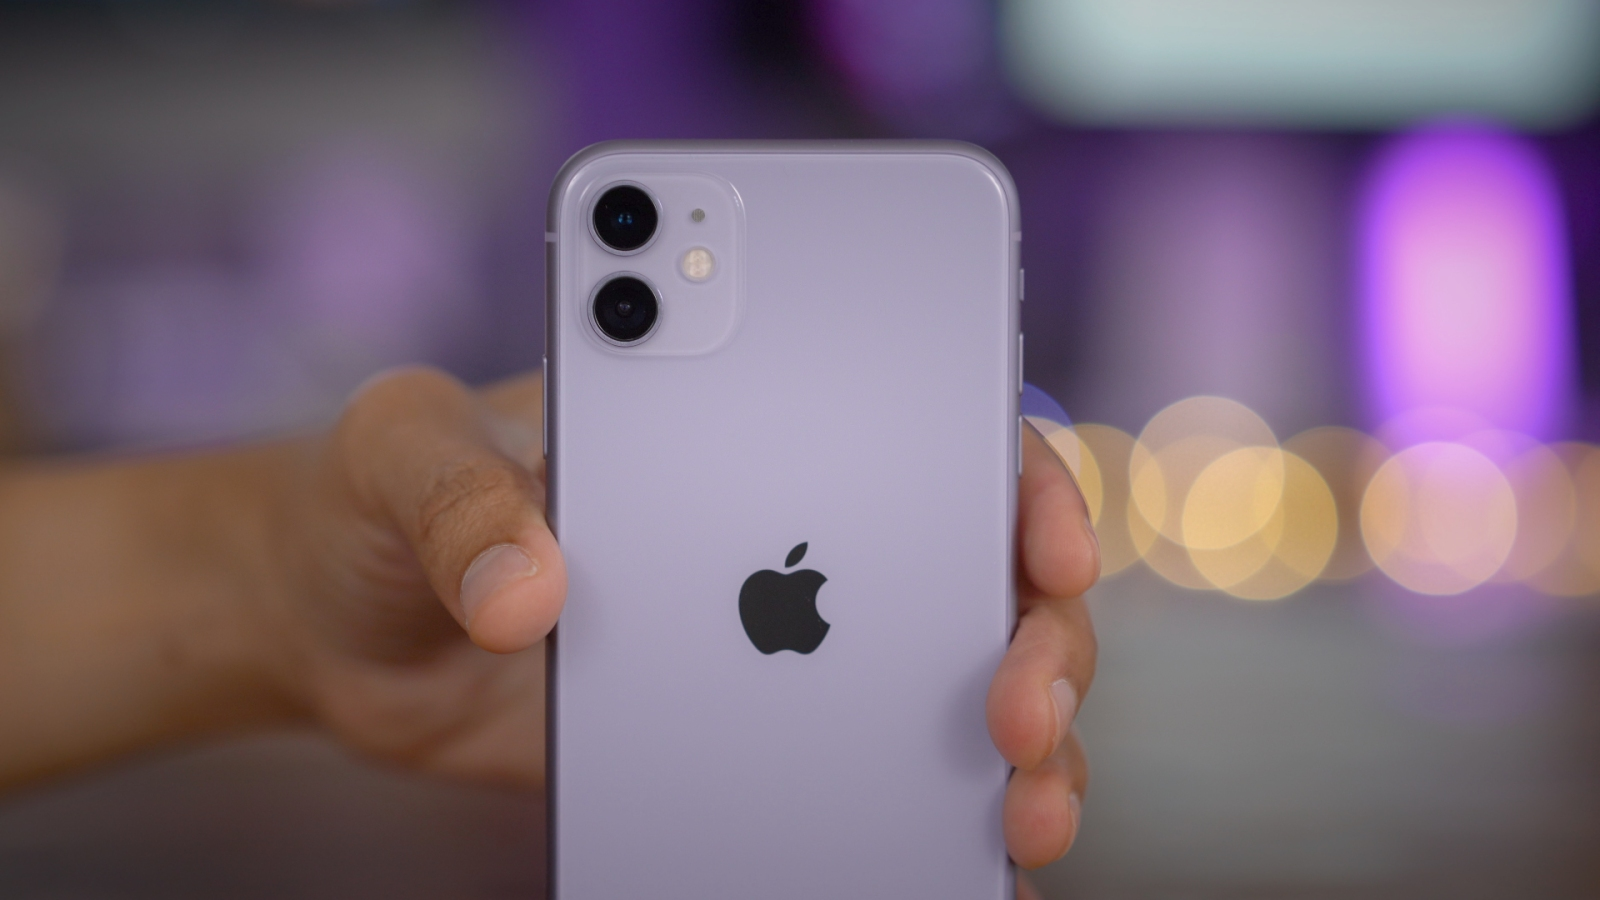 9to5mac.com - iPhone 11 Review - a camera-centric follow-up to the iPhone XR [Video]